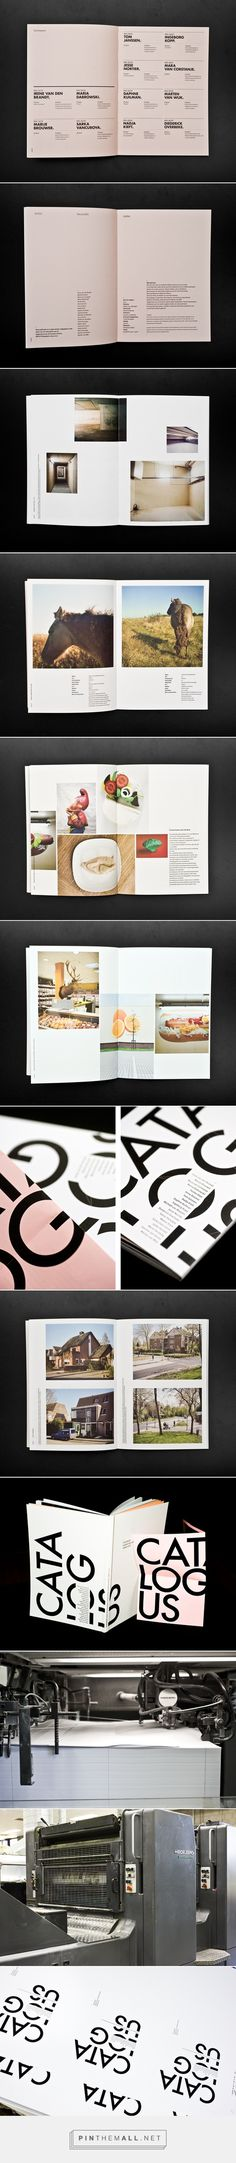 CATA - LOG - US on Behance... - a grouped images picture - Pin Them All #book